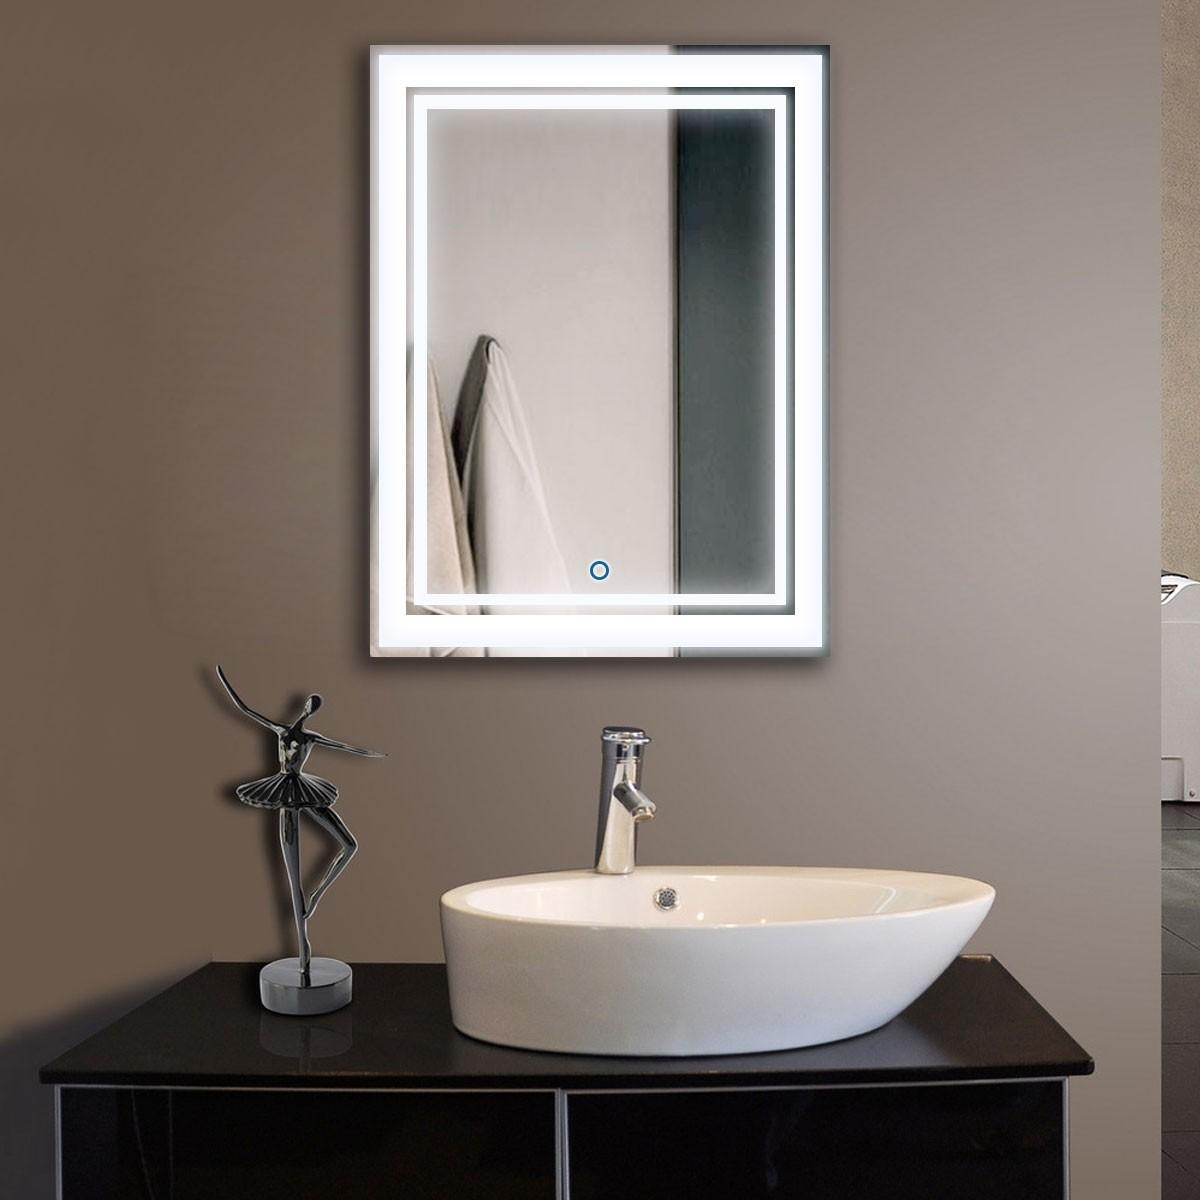 24 X 32 In Vertical Led Mirror, Touch Button (Dk Od Ck160 Intended For Led Lit Bathroom Mirrors (Image 1 of 20)